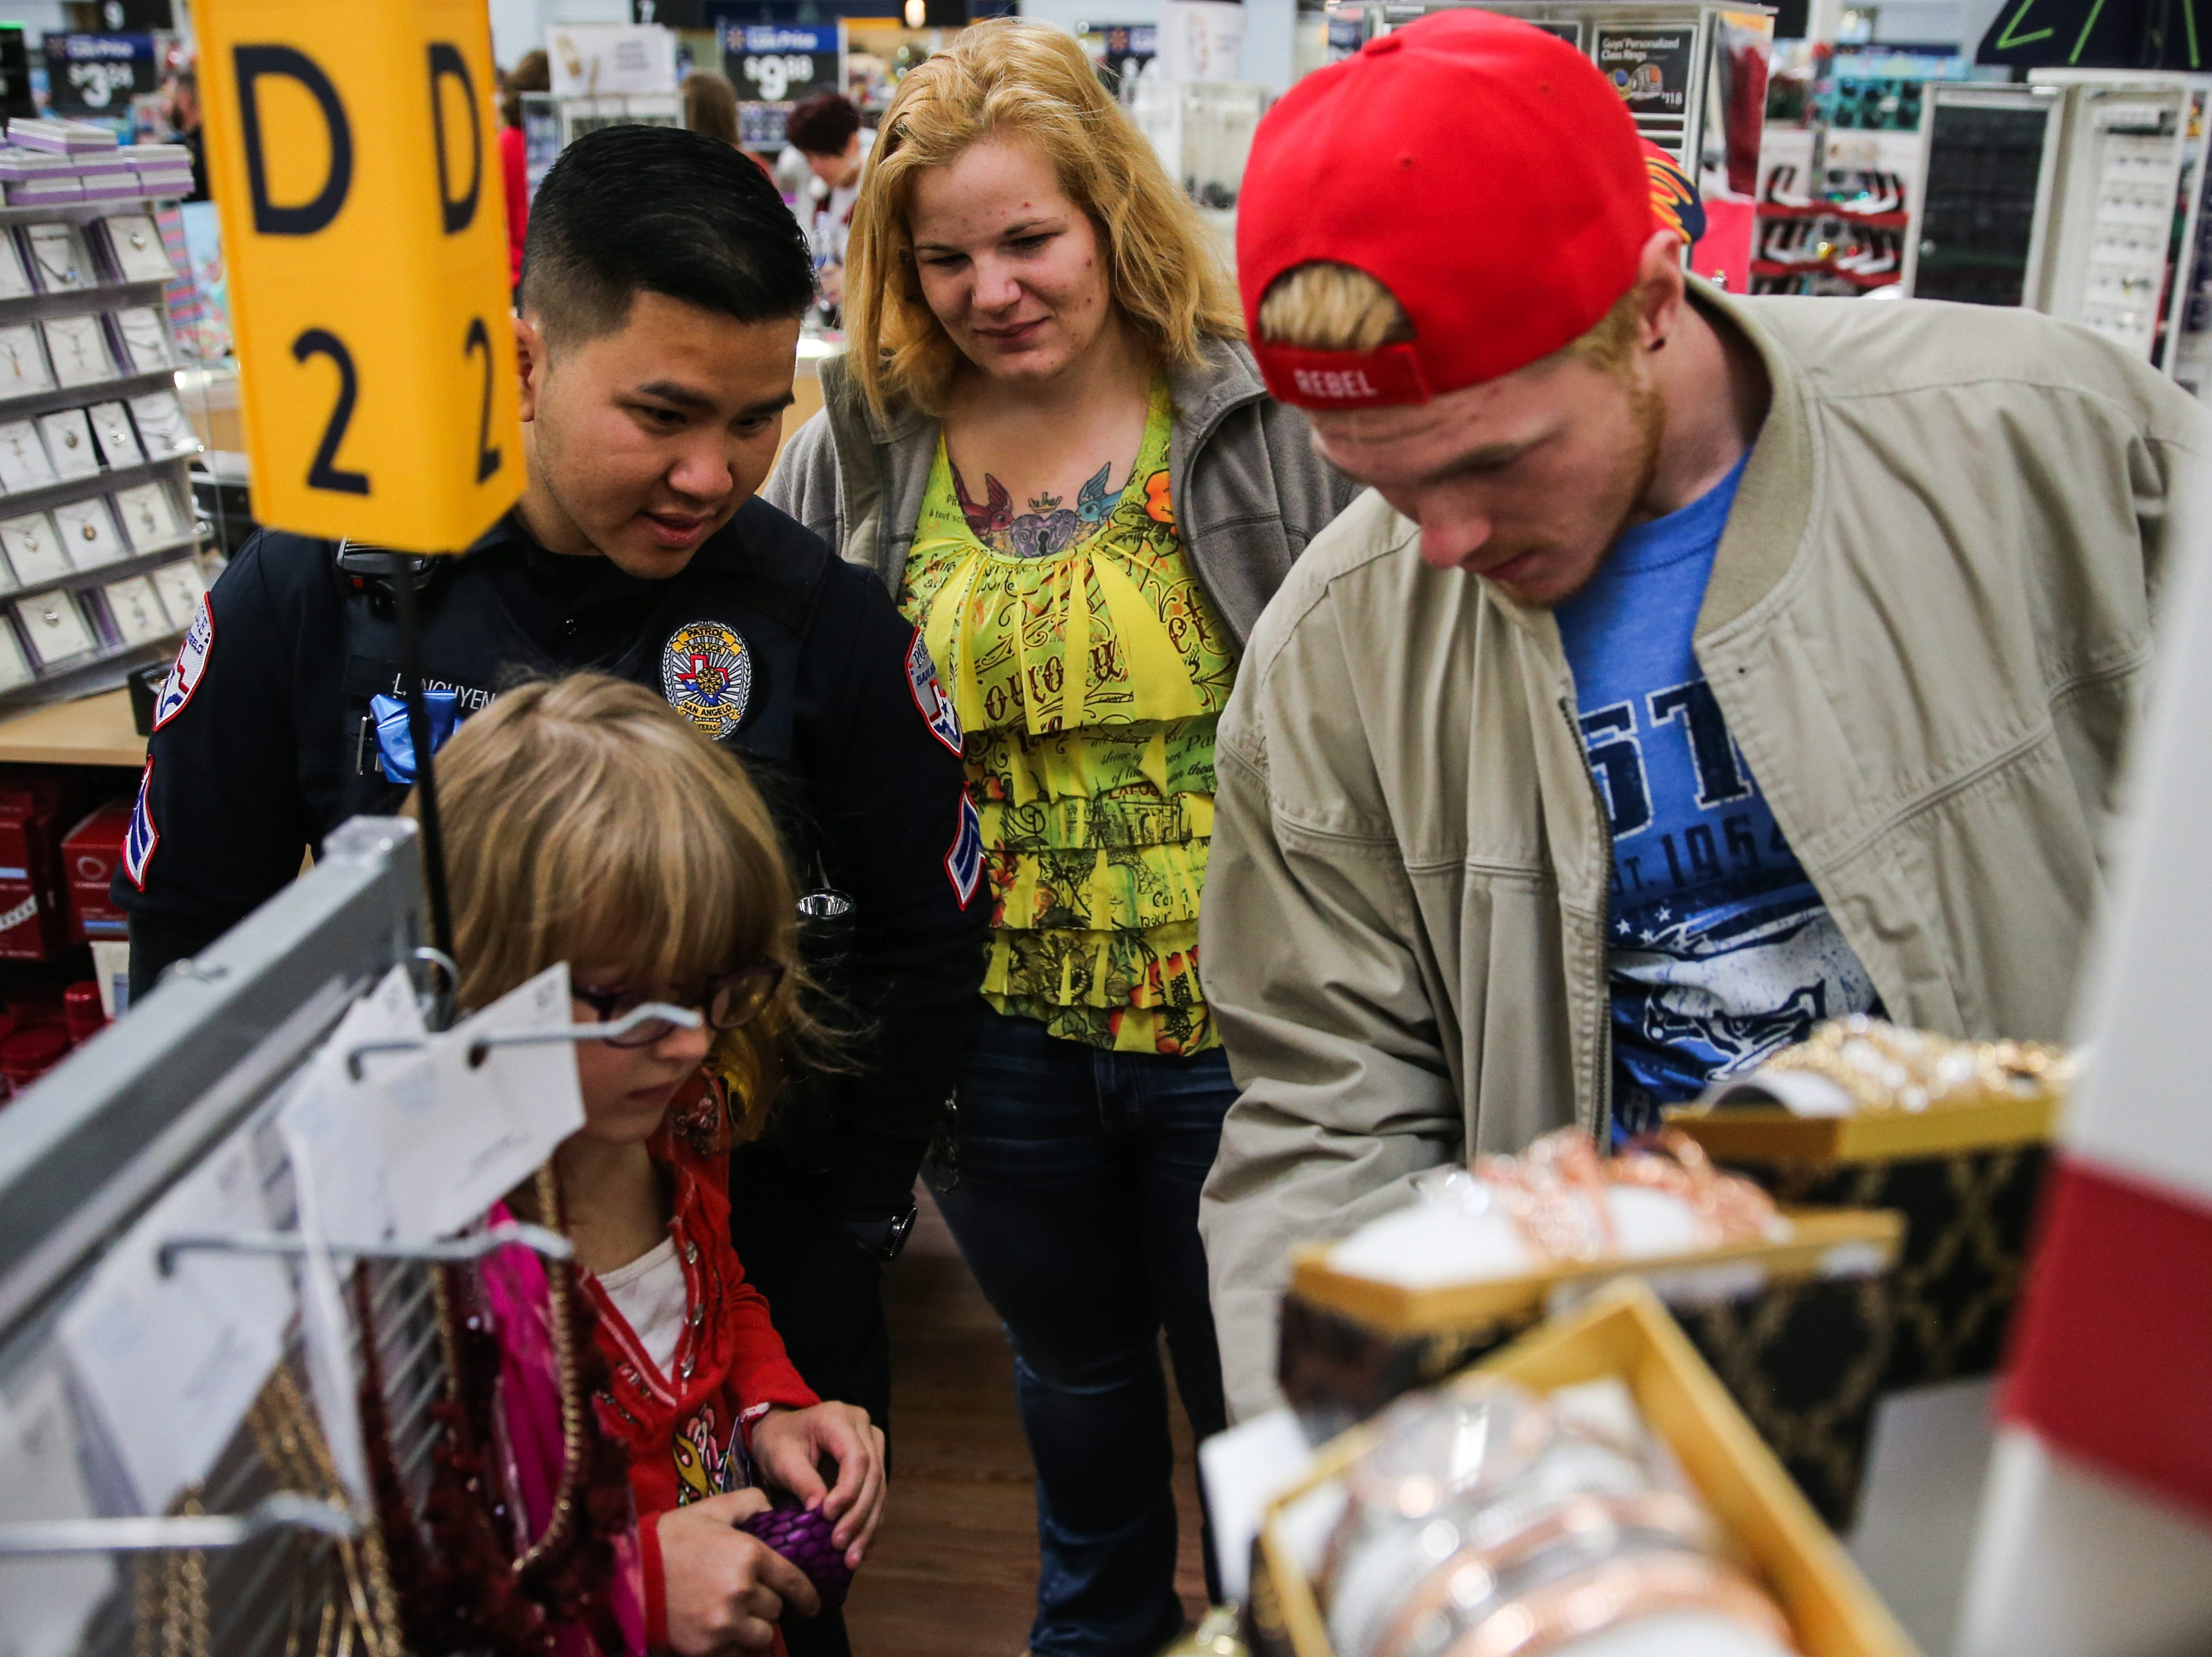 Officer Long Nguyen shops with Nicole Odell, 6, while she picks a gift for her stepfather, Brandon Wimberly, right, during Shop with a Cop event Saturday, Dec. 15, 2018, at Walmart.